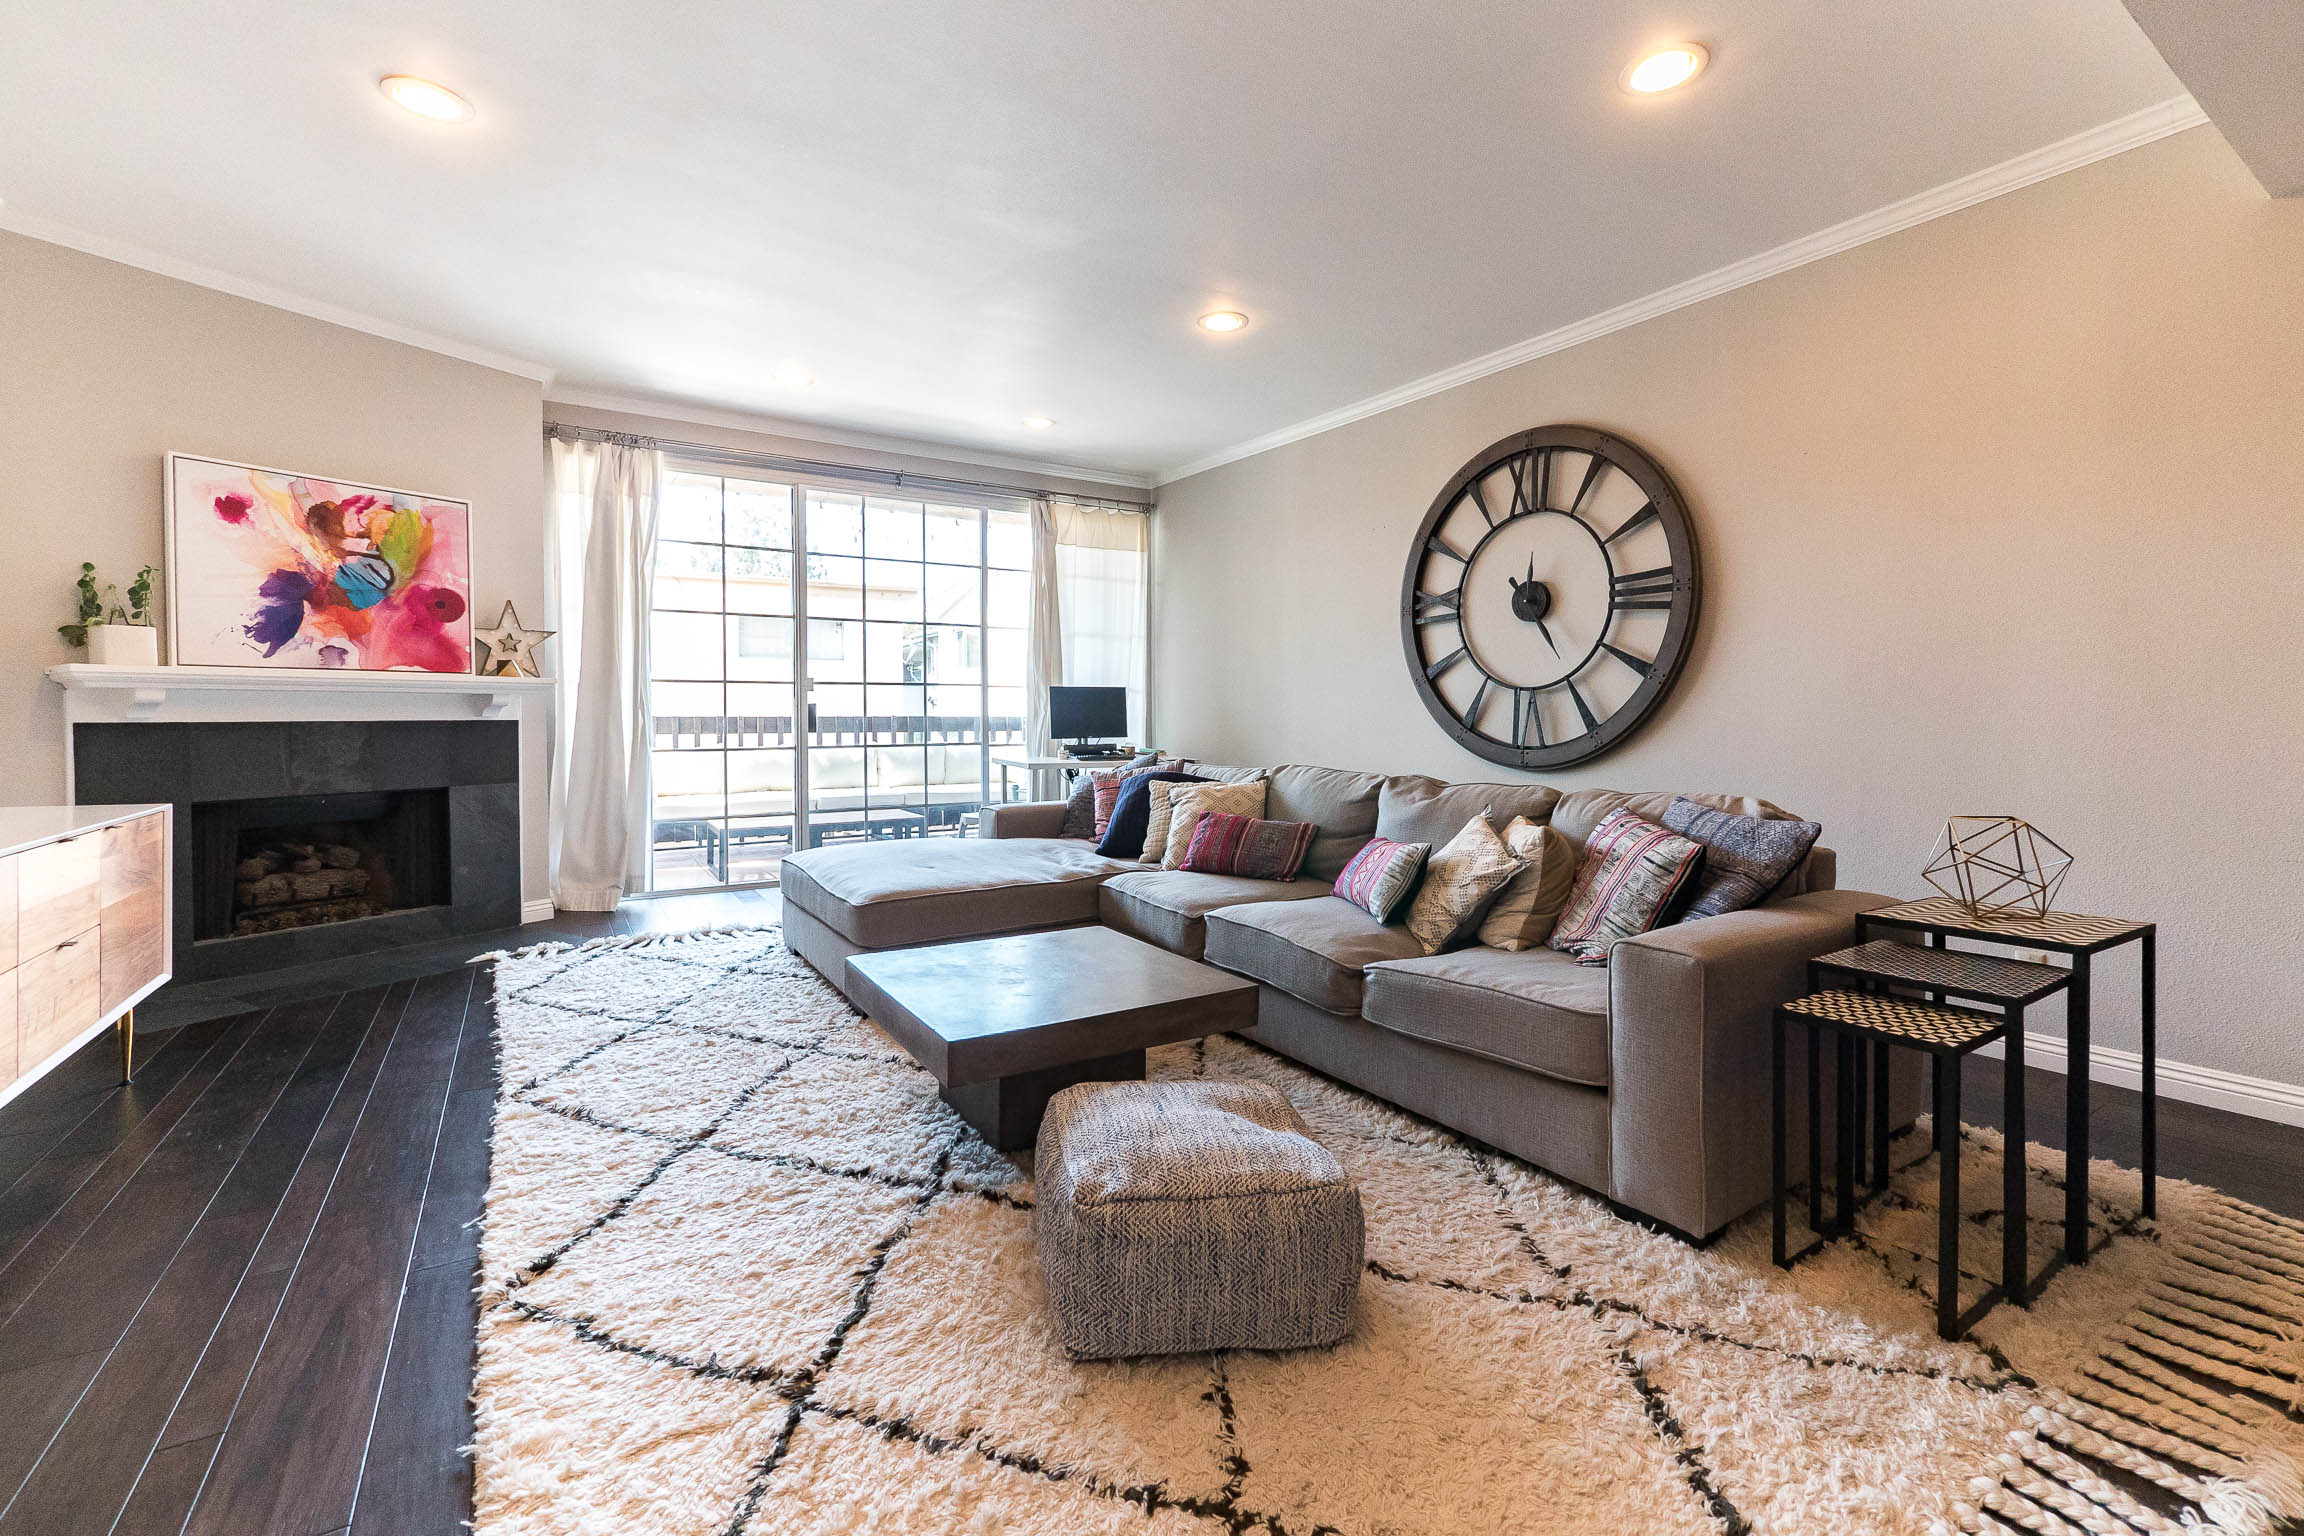 Extremely Spacious and Updated (Can Be Furnished or UNfurnished) Condo - 2+2 with Large Balcony in Heart of West LA